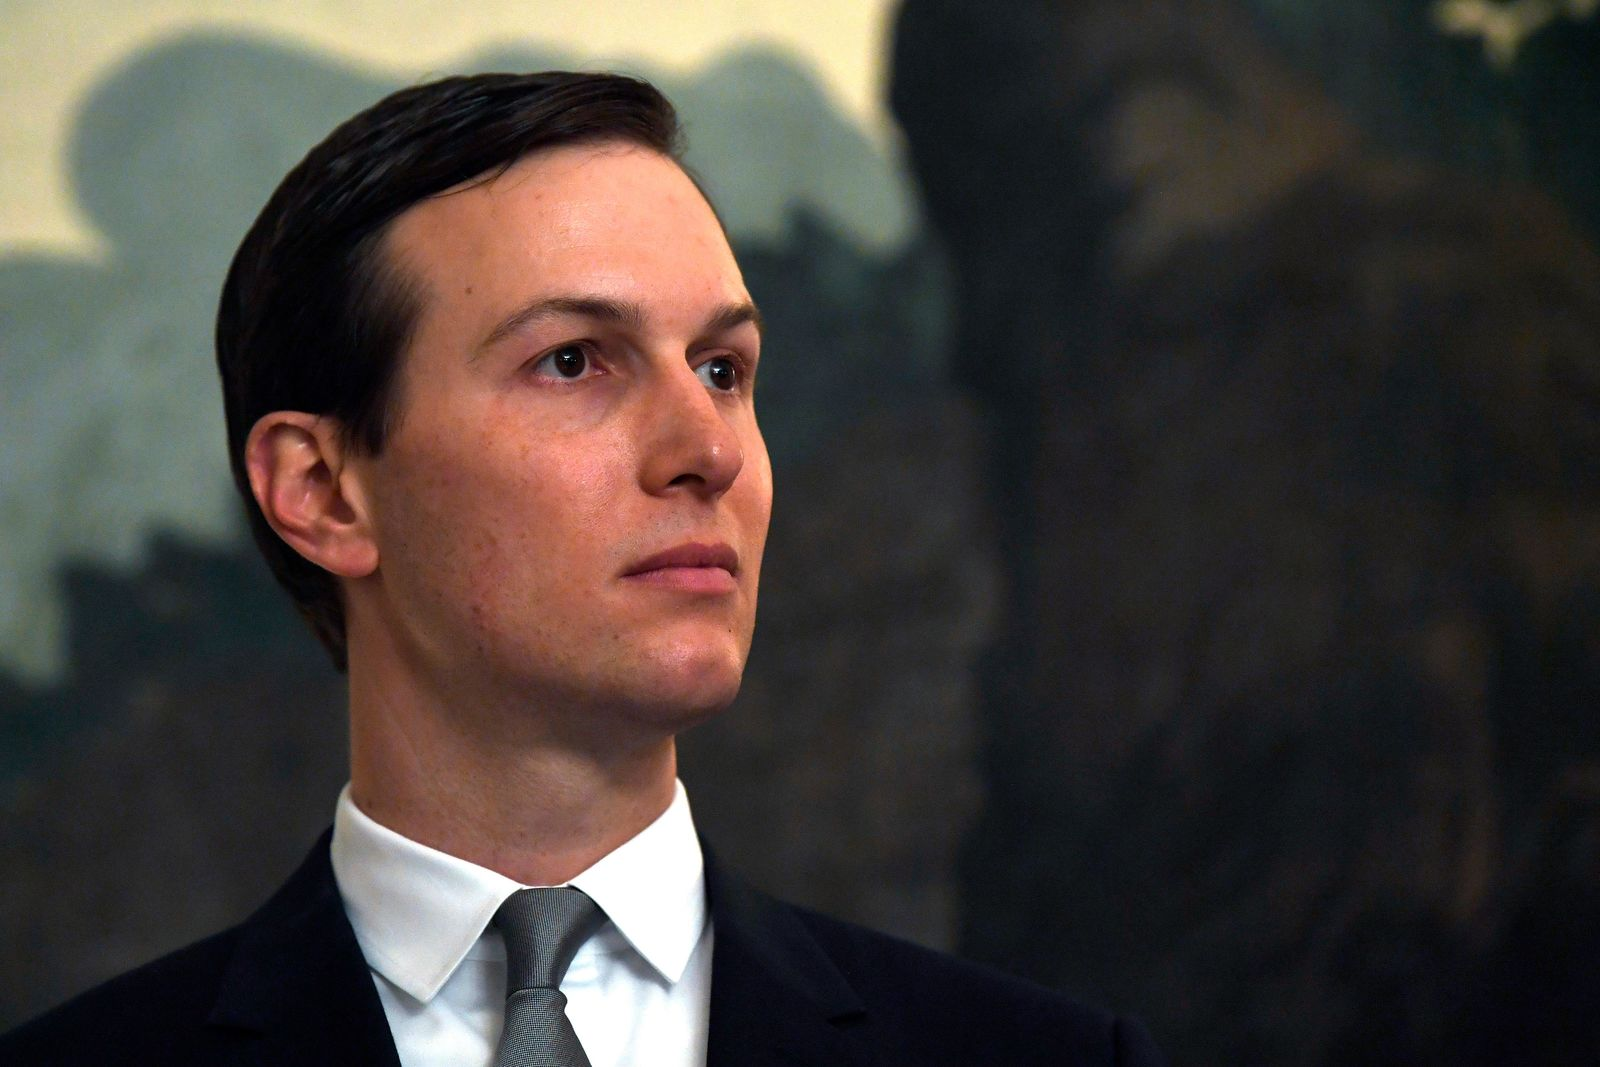 FILE - In this March 25, 2019, file photo White House adviser Jared Kushner listens during a proclamation signing with President Donald Trump and Israeli Prime Minister Benjamin Netanyahu in the Diplomatic Reception Room at the White House in Washington. (AP Photo/Susan Walsh, File)